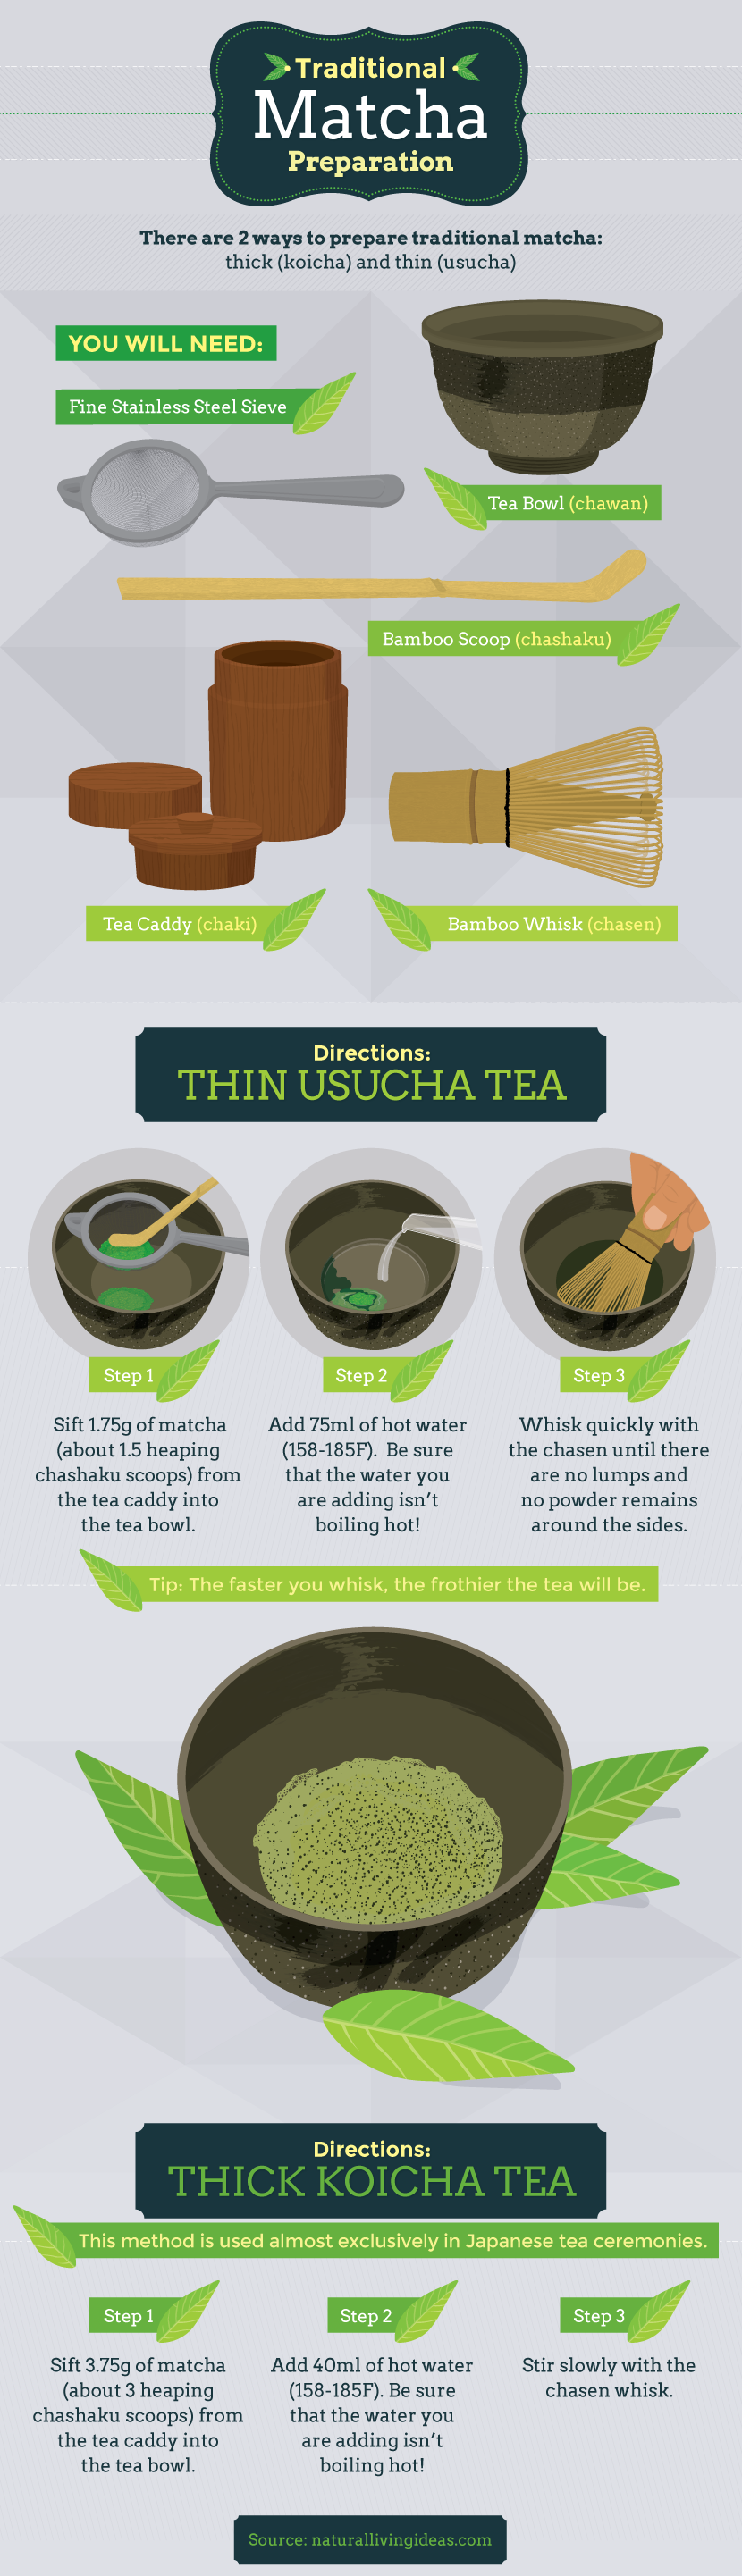 Traditional Matcha Preparation - Matcha Your Way to a Healthy Life